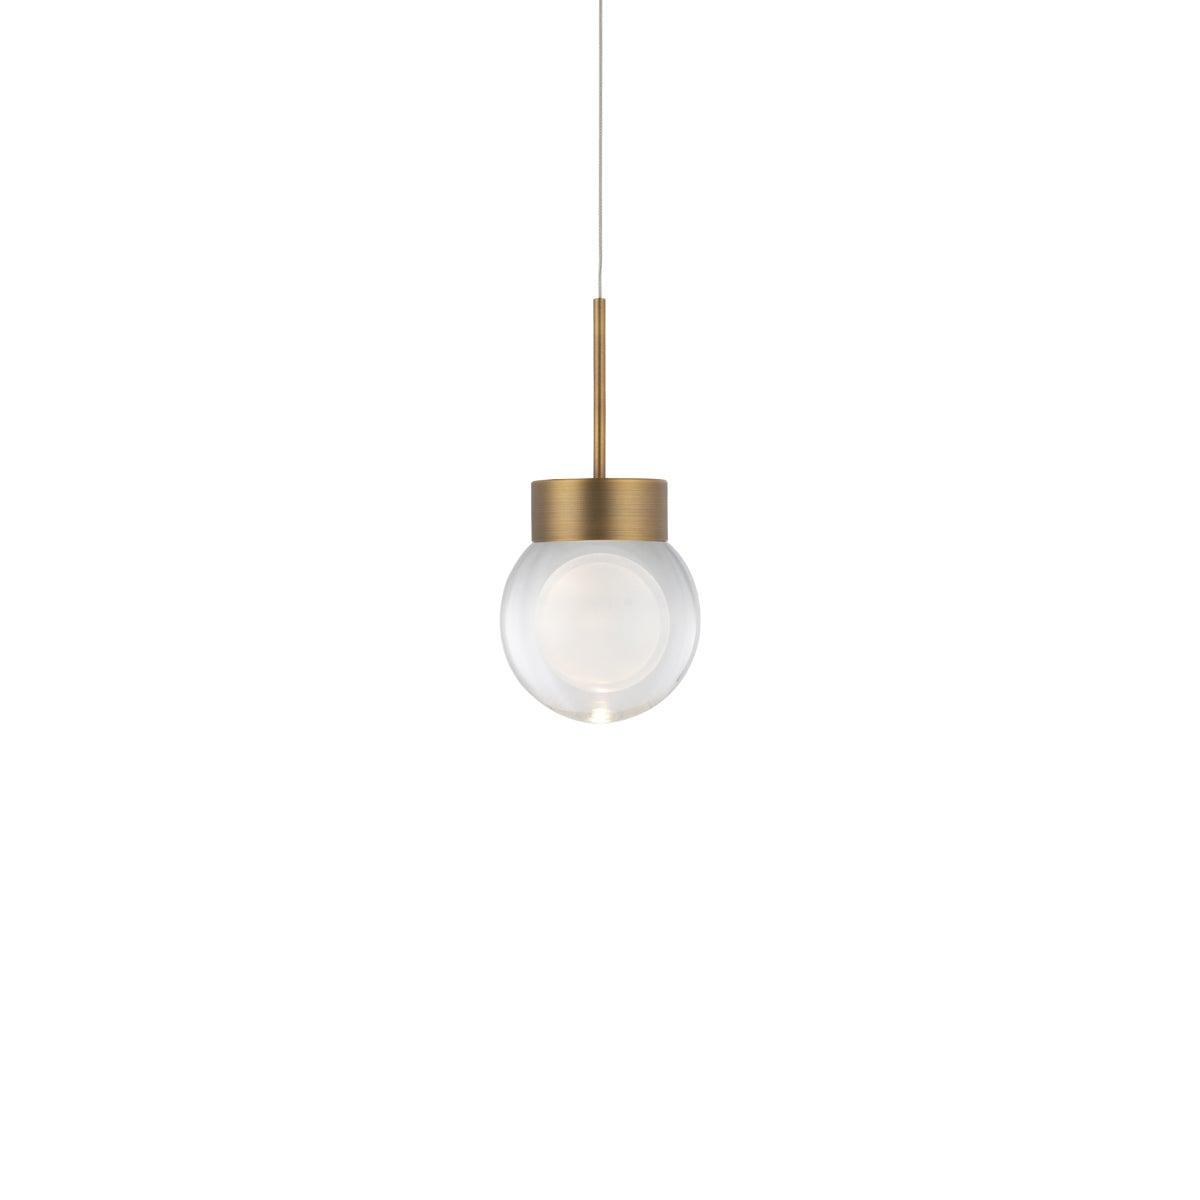 Modern Forms Canada - PD-82006-AB - LED Pendant - Double Bubble - Aged Brass